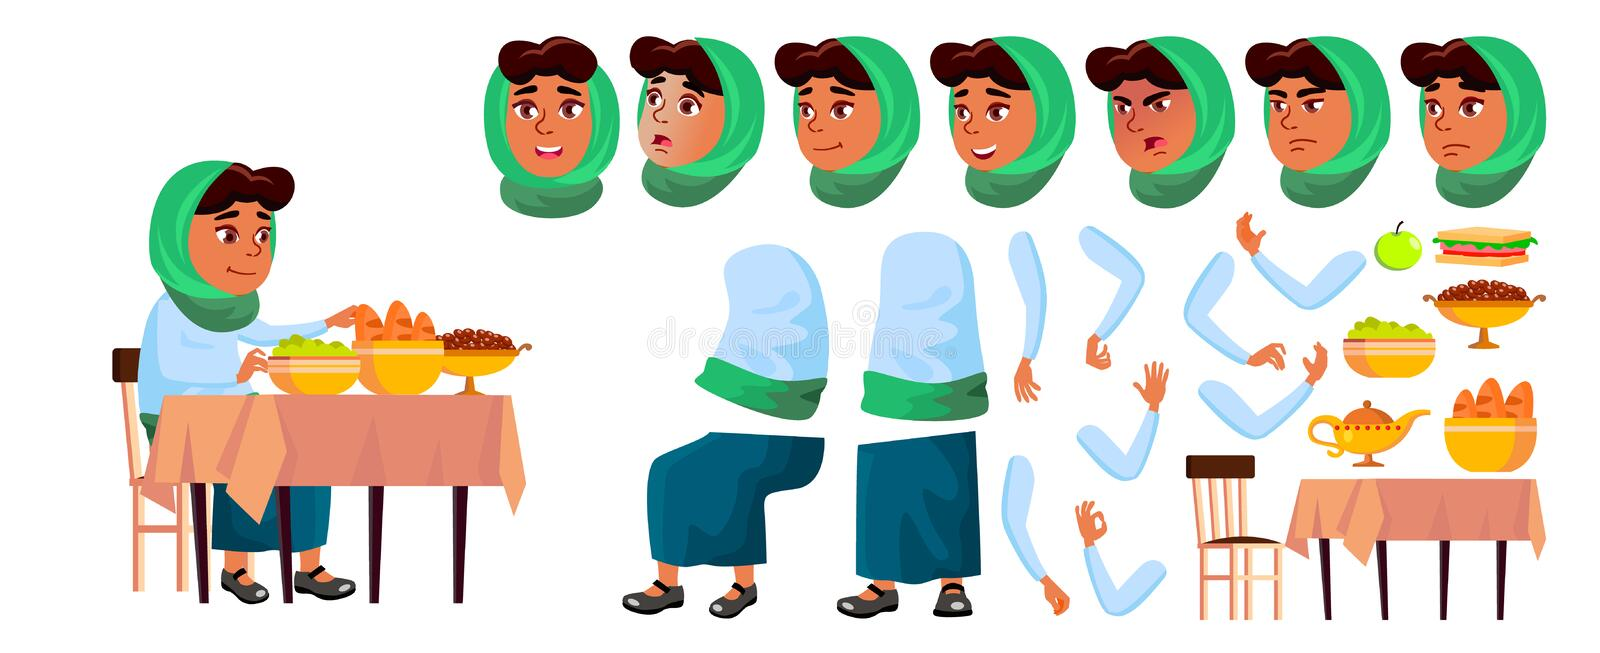 Arab, Muslim Girl Vector. Animation Creation Set. Face Emotions, Gestures. Smile. Food, Table, Lunch, Traditional royalty free illustration